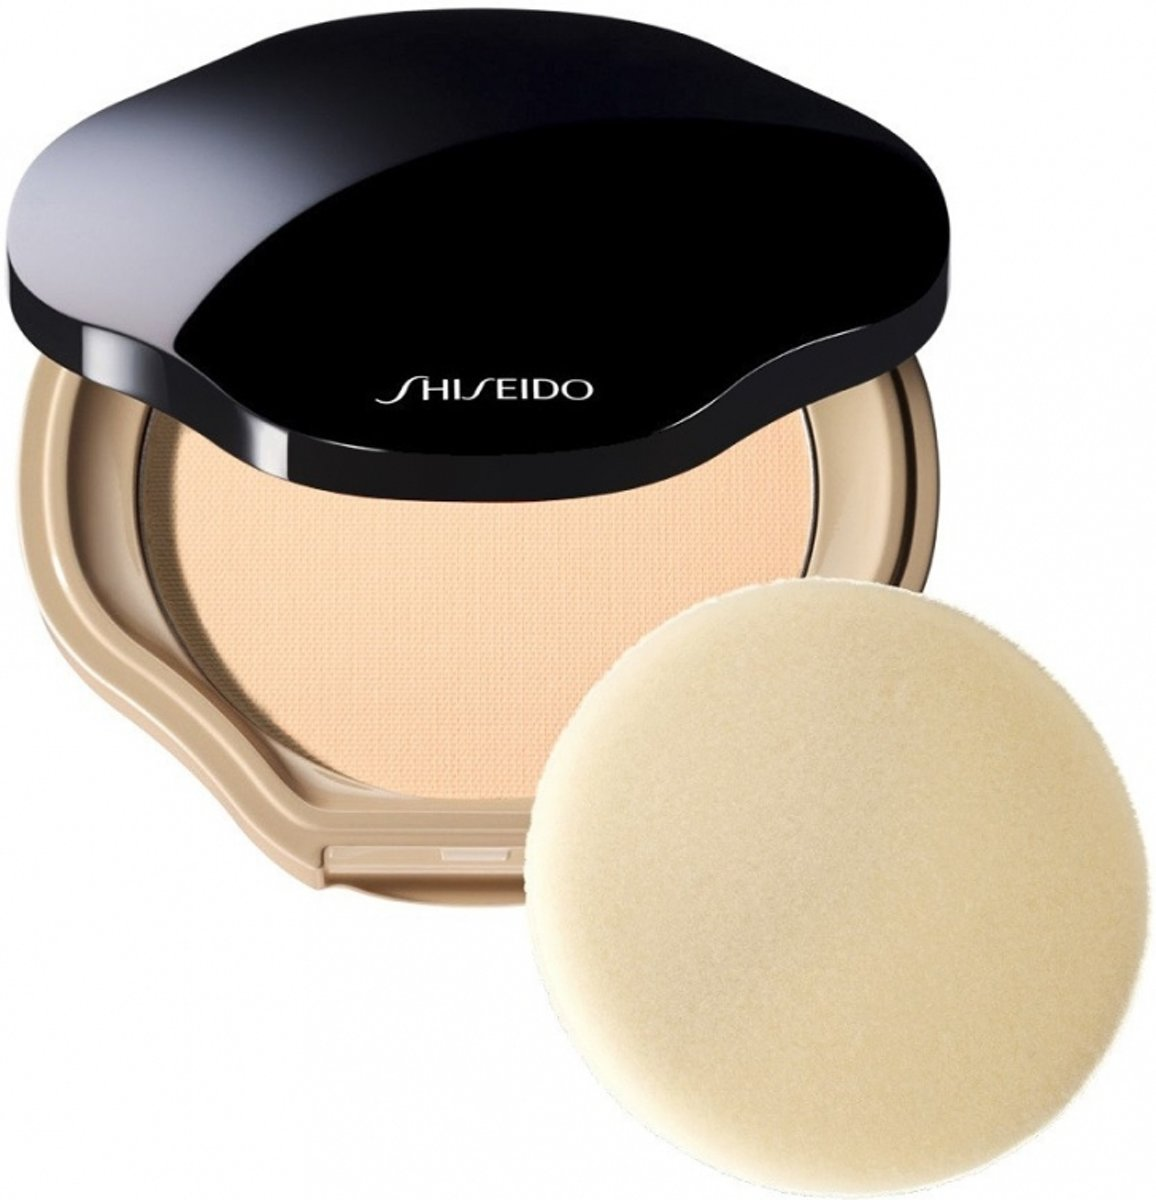 Shiseido Sheer and Perfect Compact Foundation 10 gr - I40